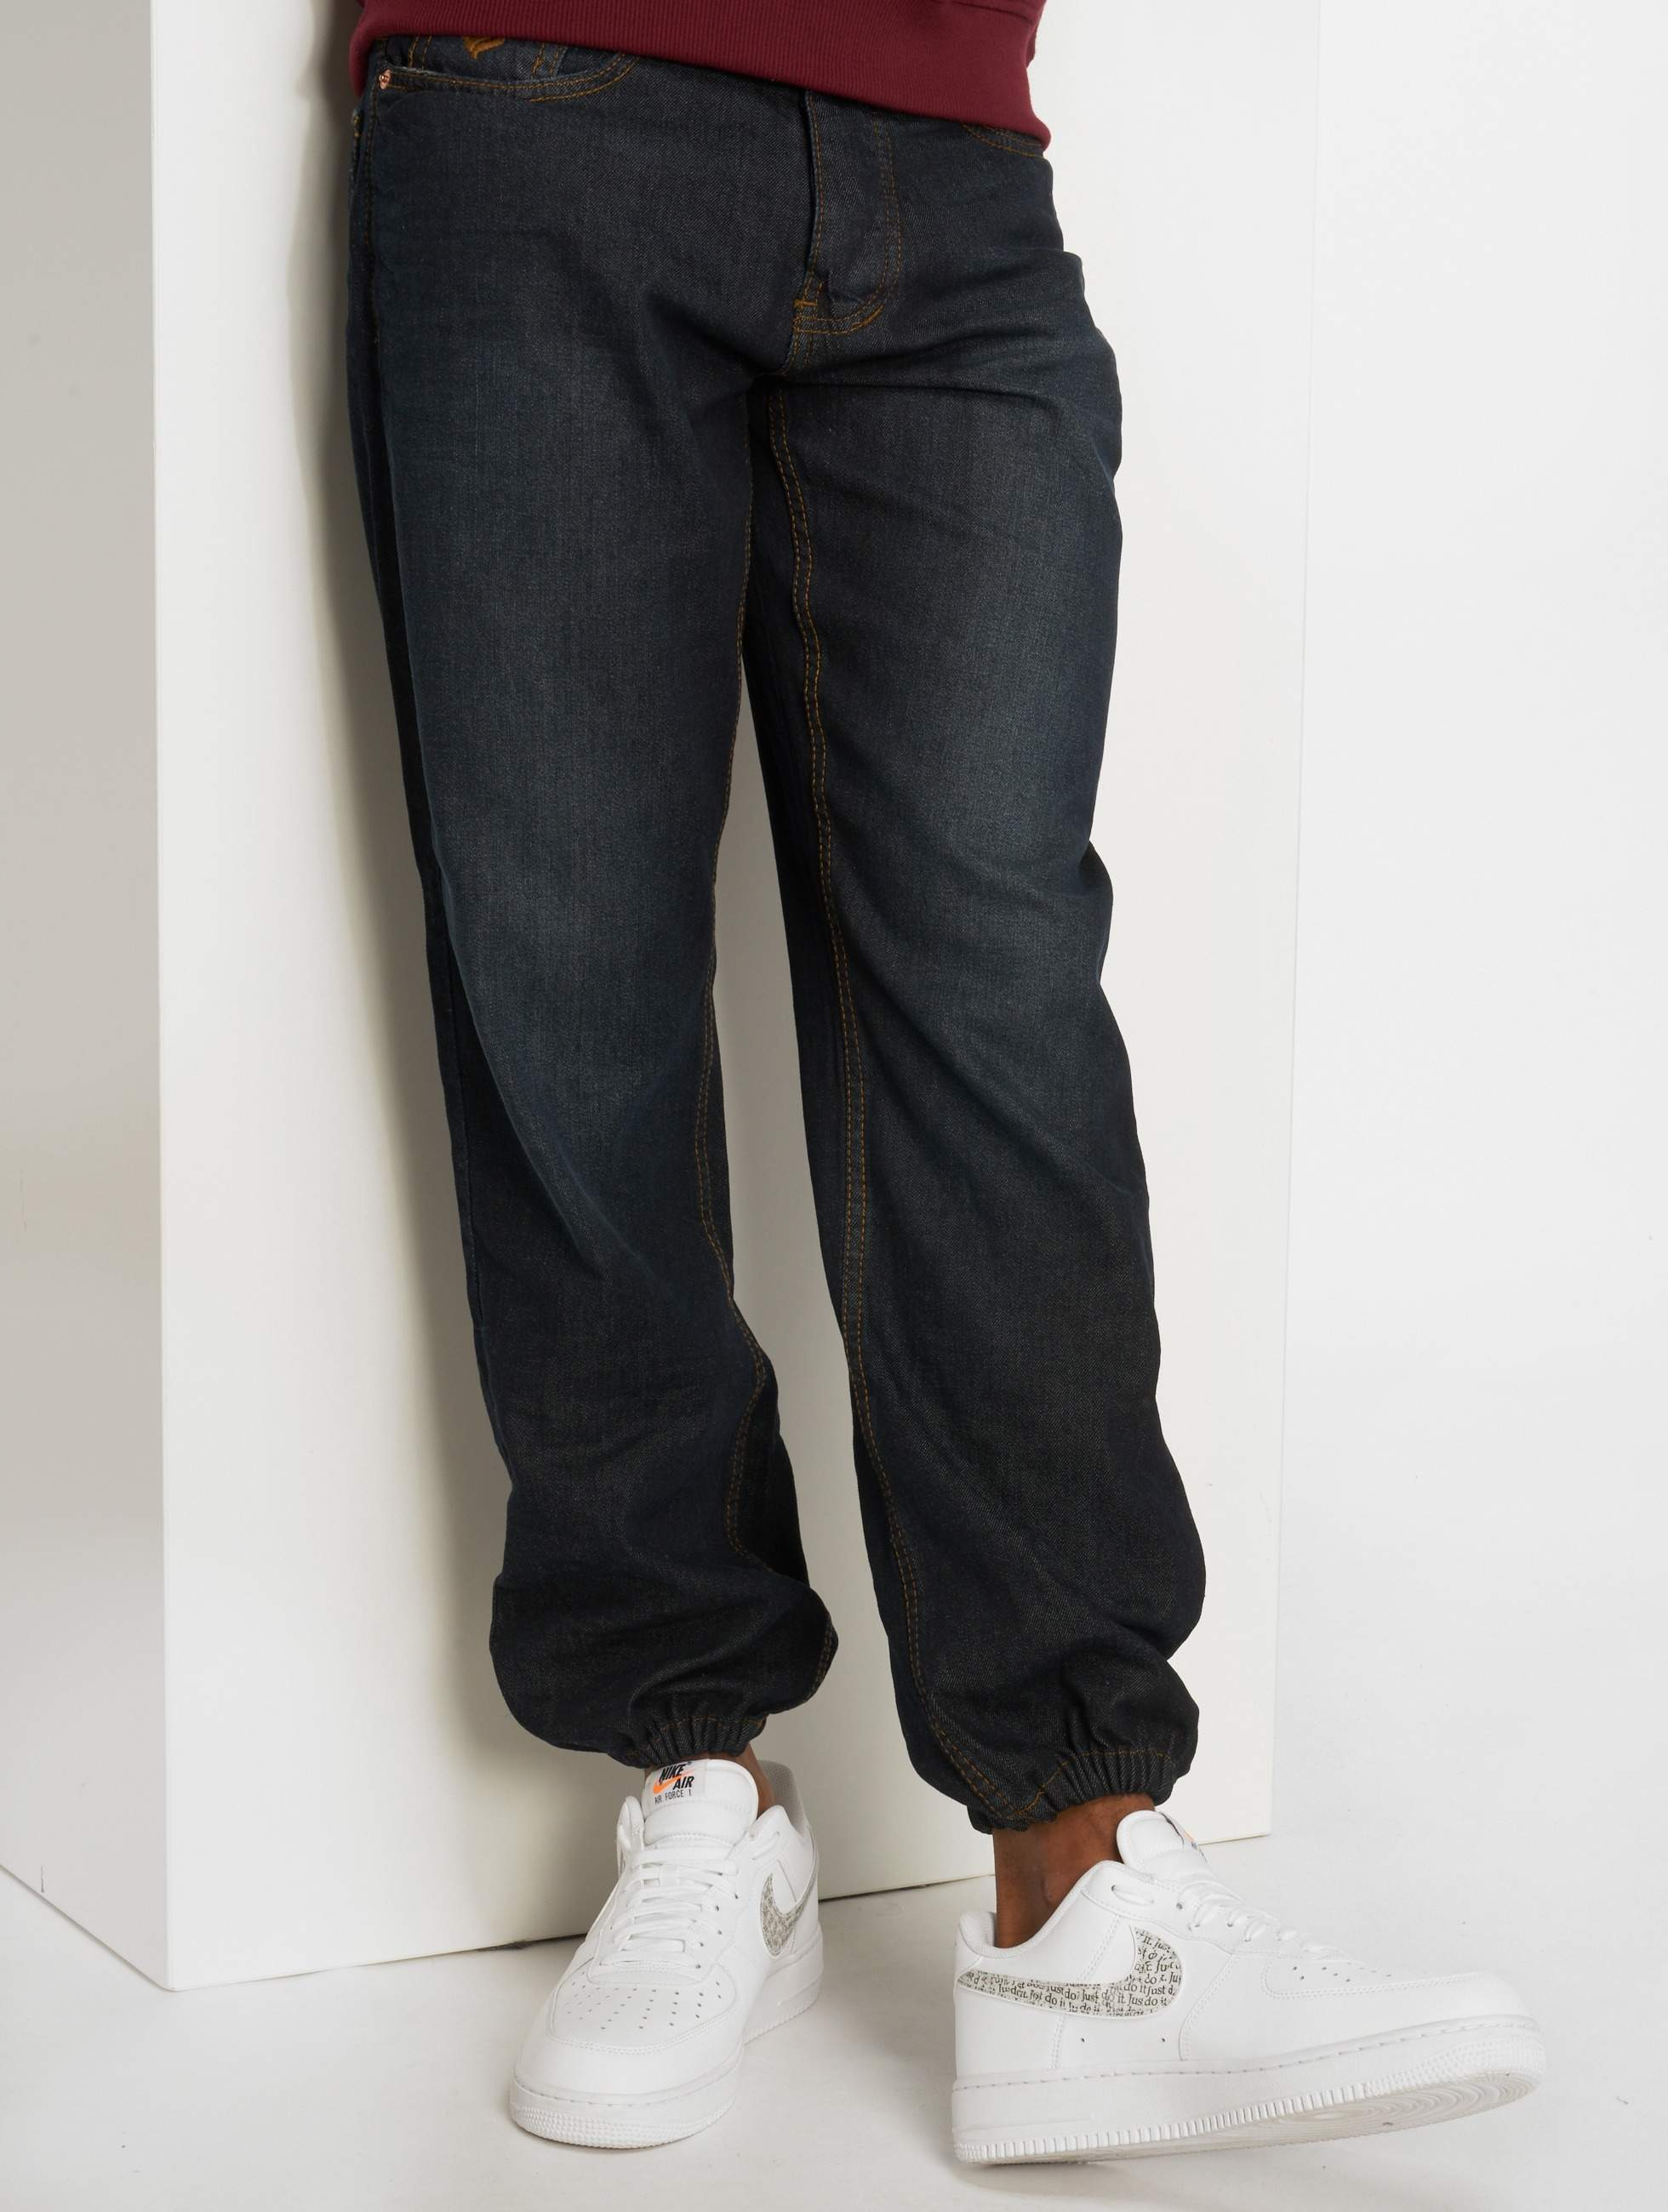 Rocawear / Loose Fit Jeans Loose Fit in blue W 31